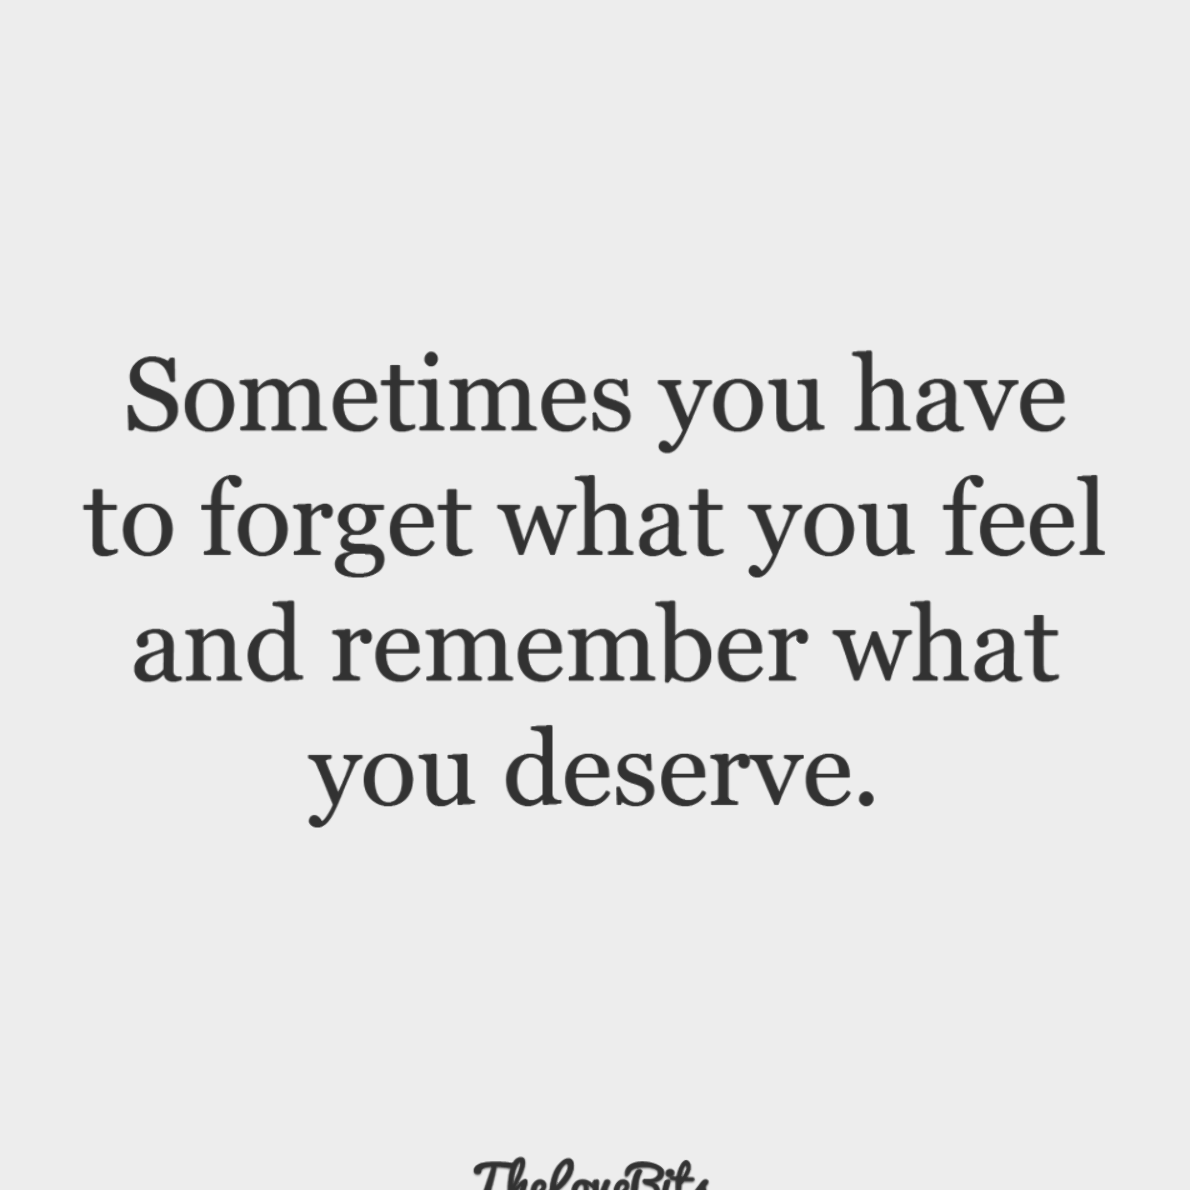 Quotes For Move On After Breakup